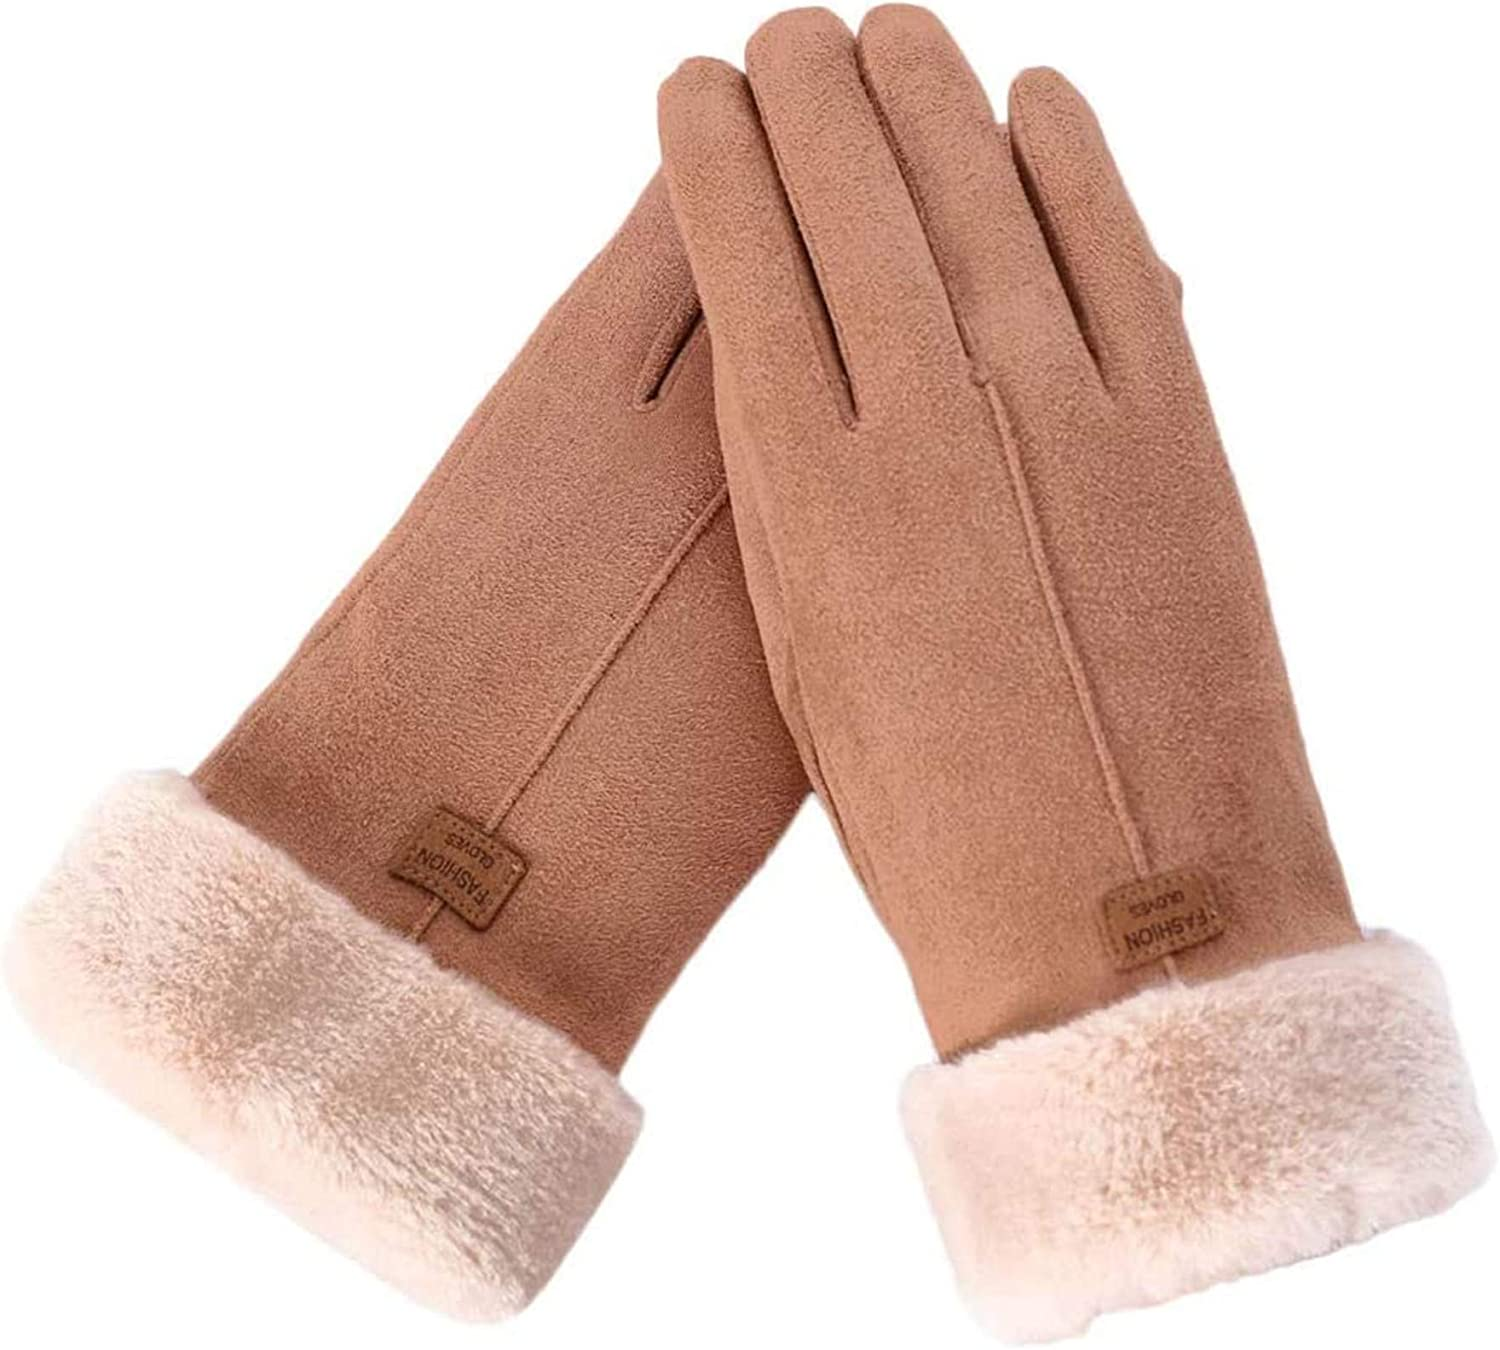 Women Gloves Winter Soft Suede Warm Plush Lined Touchscreen Comfortable Thermal Elastic